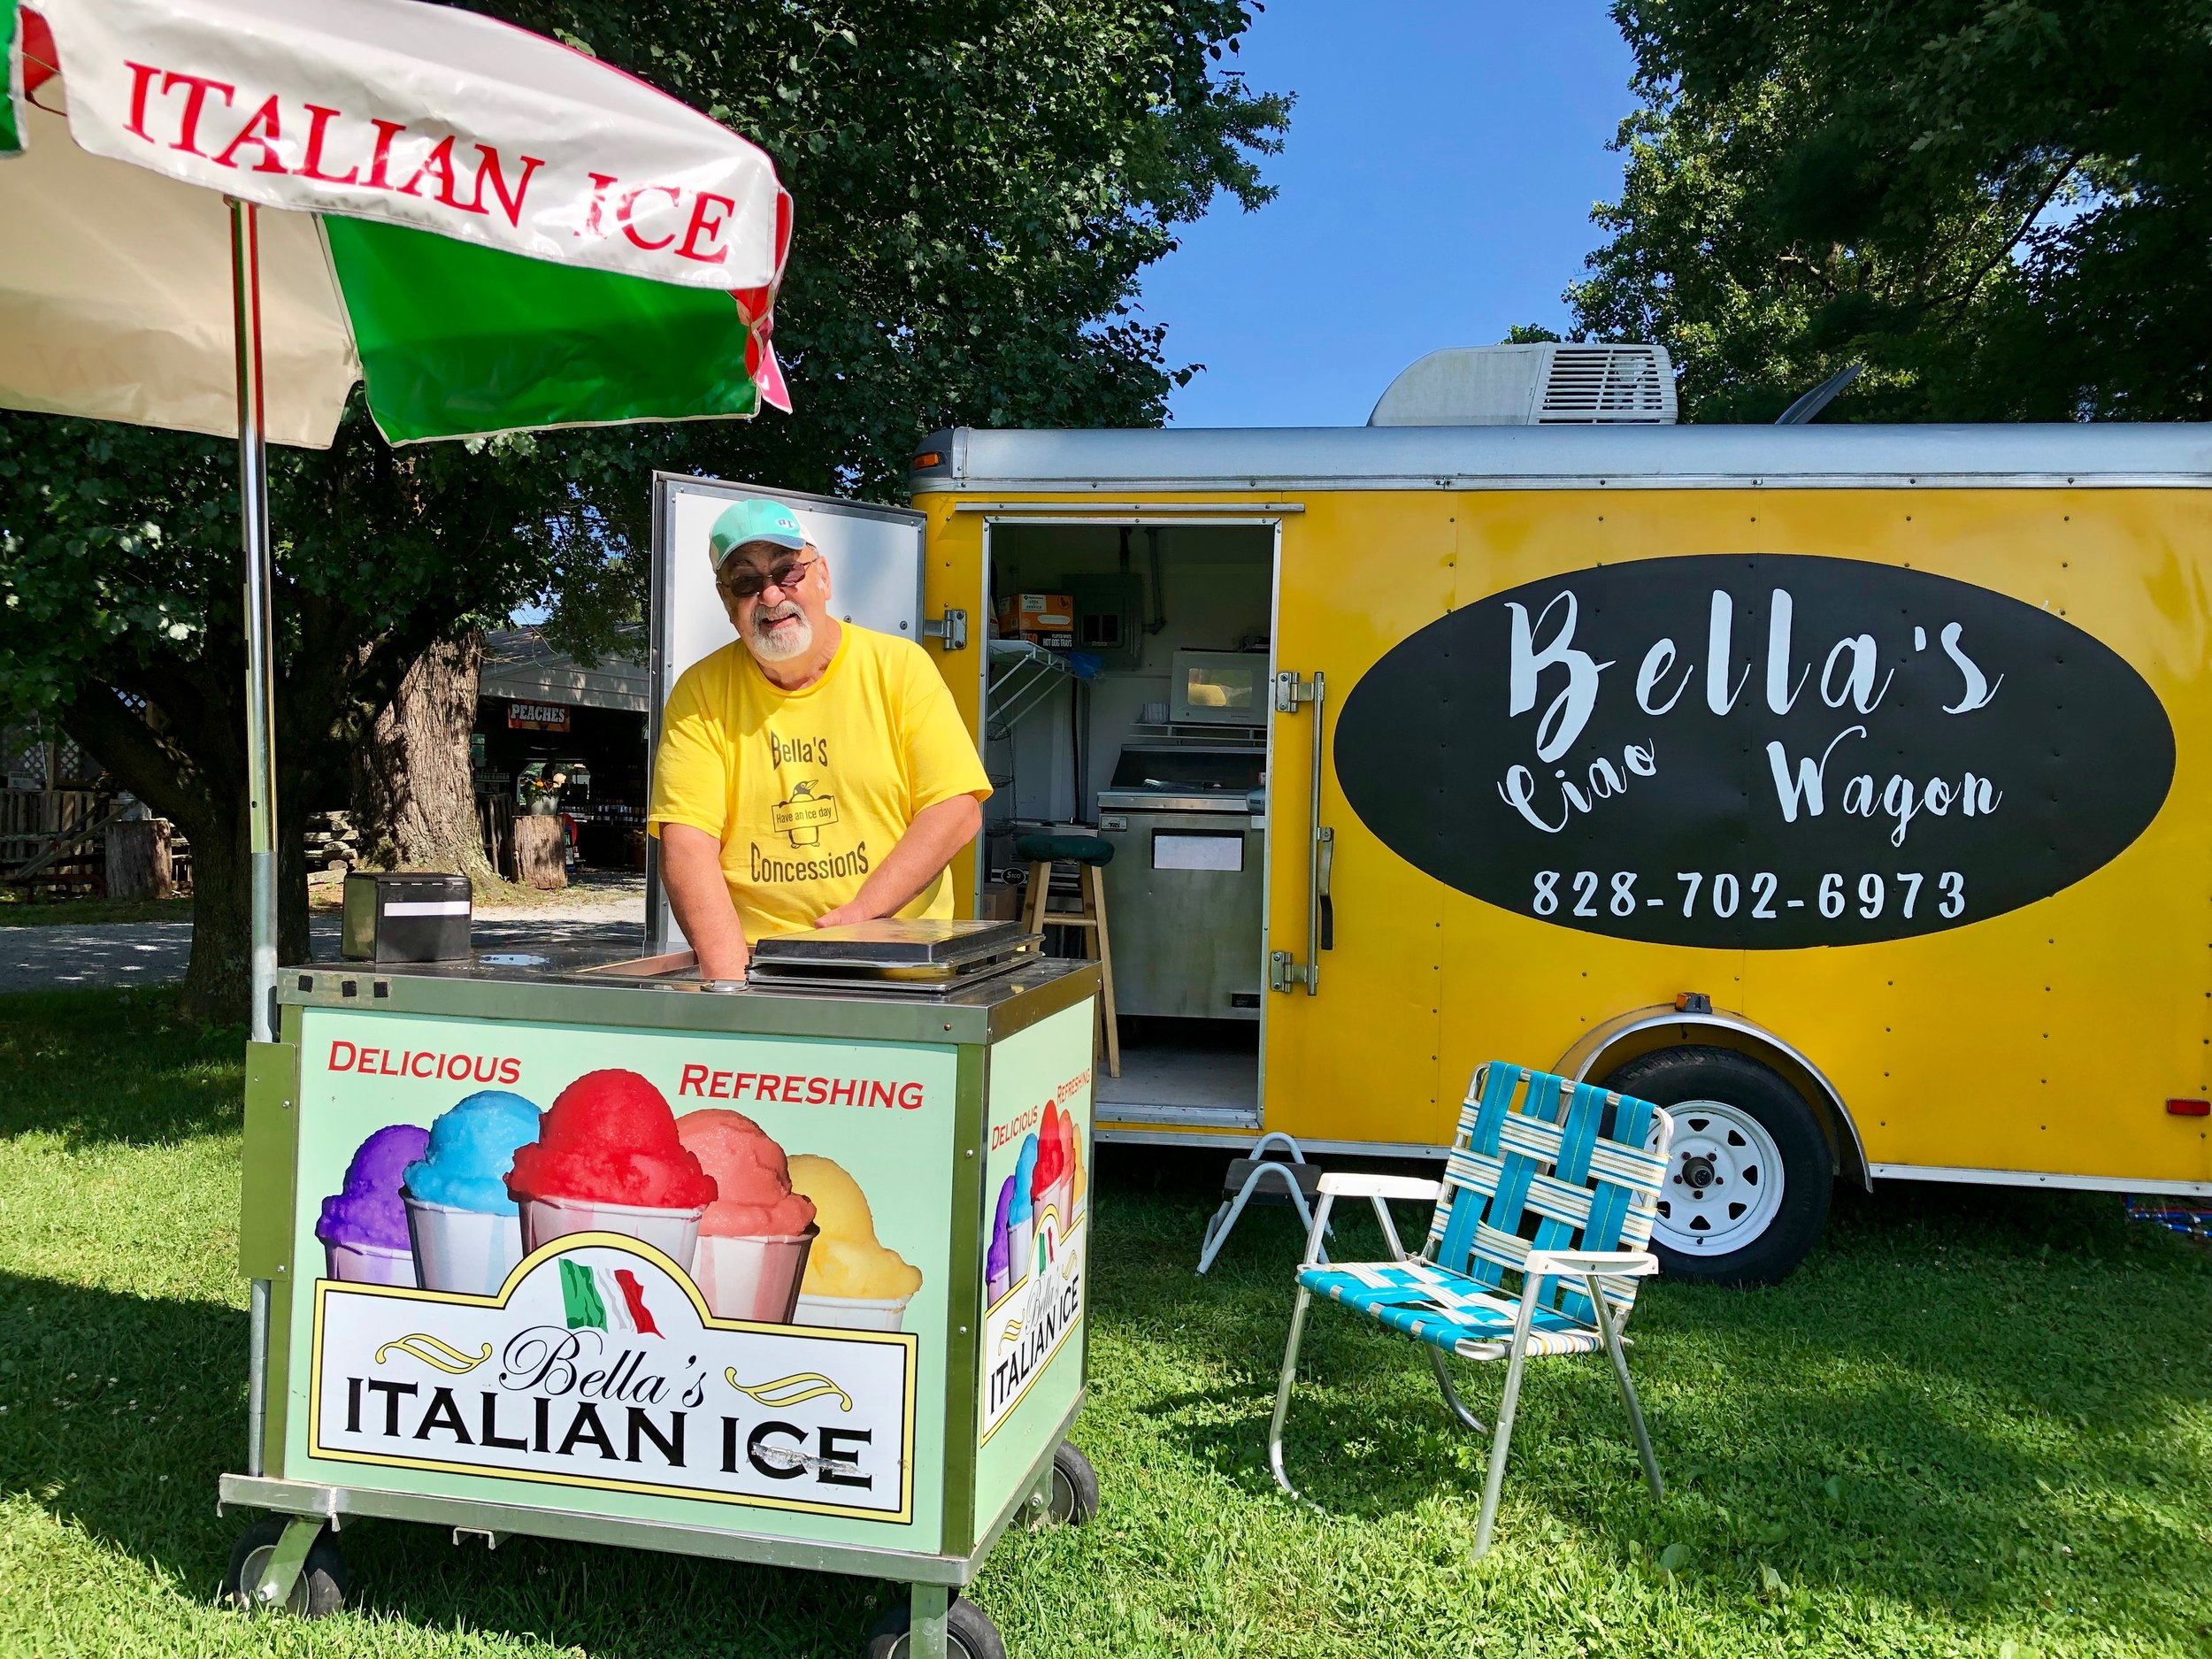 On the weekends, stop by for yummy Italian Ice and fresh cooked lunch favorites! Hours will vary, call ahead to verify dates/times.